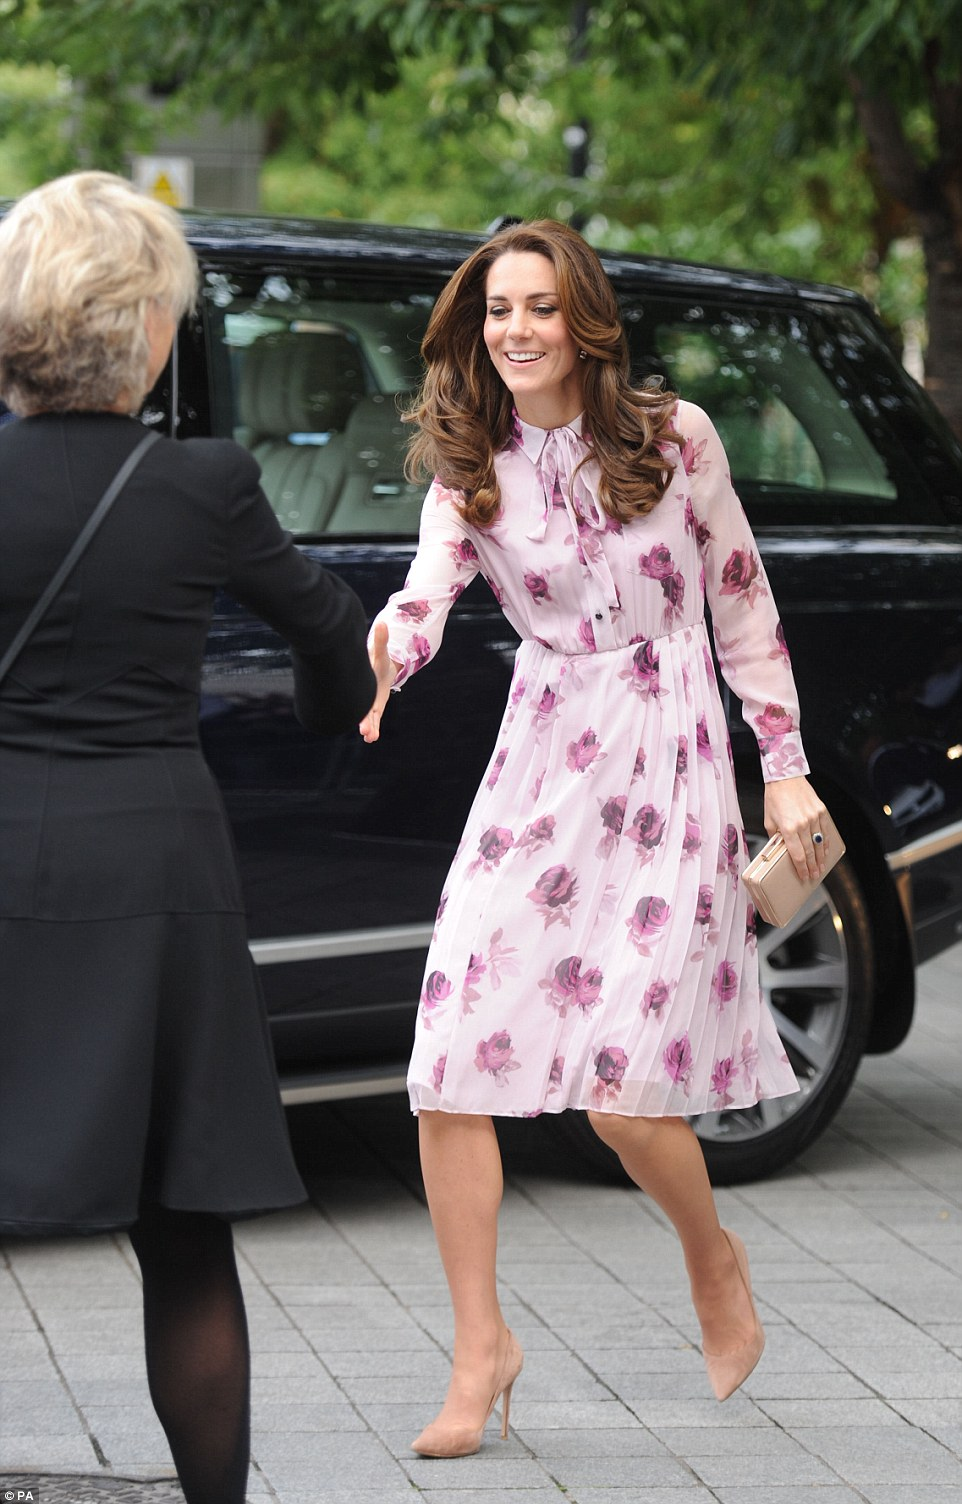 The Duchess of Cambridge arrives at County Hall on the Southbank in London, as they mark World Mental Health Day